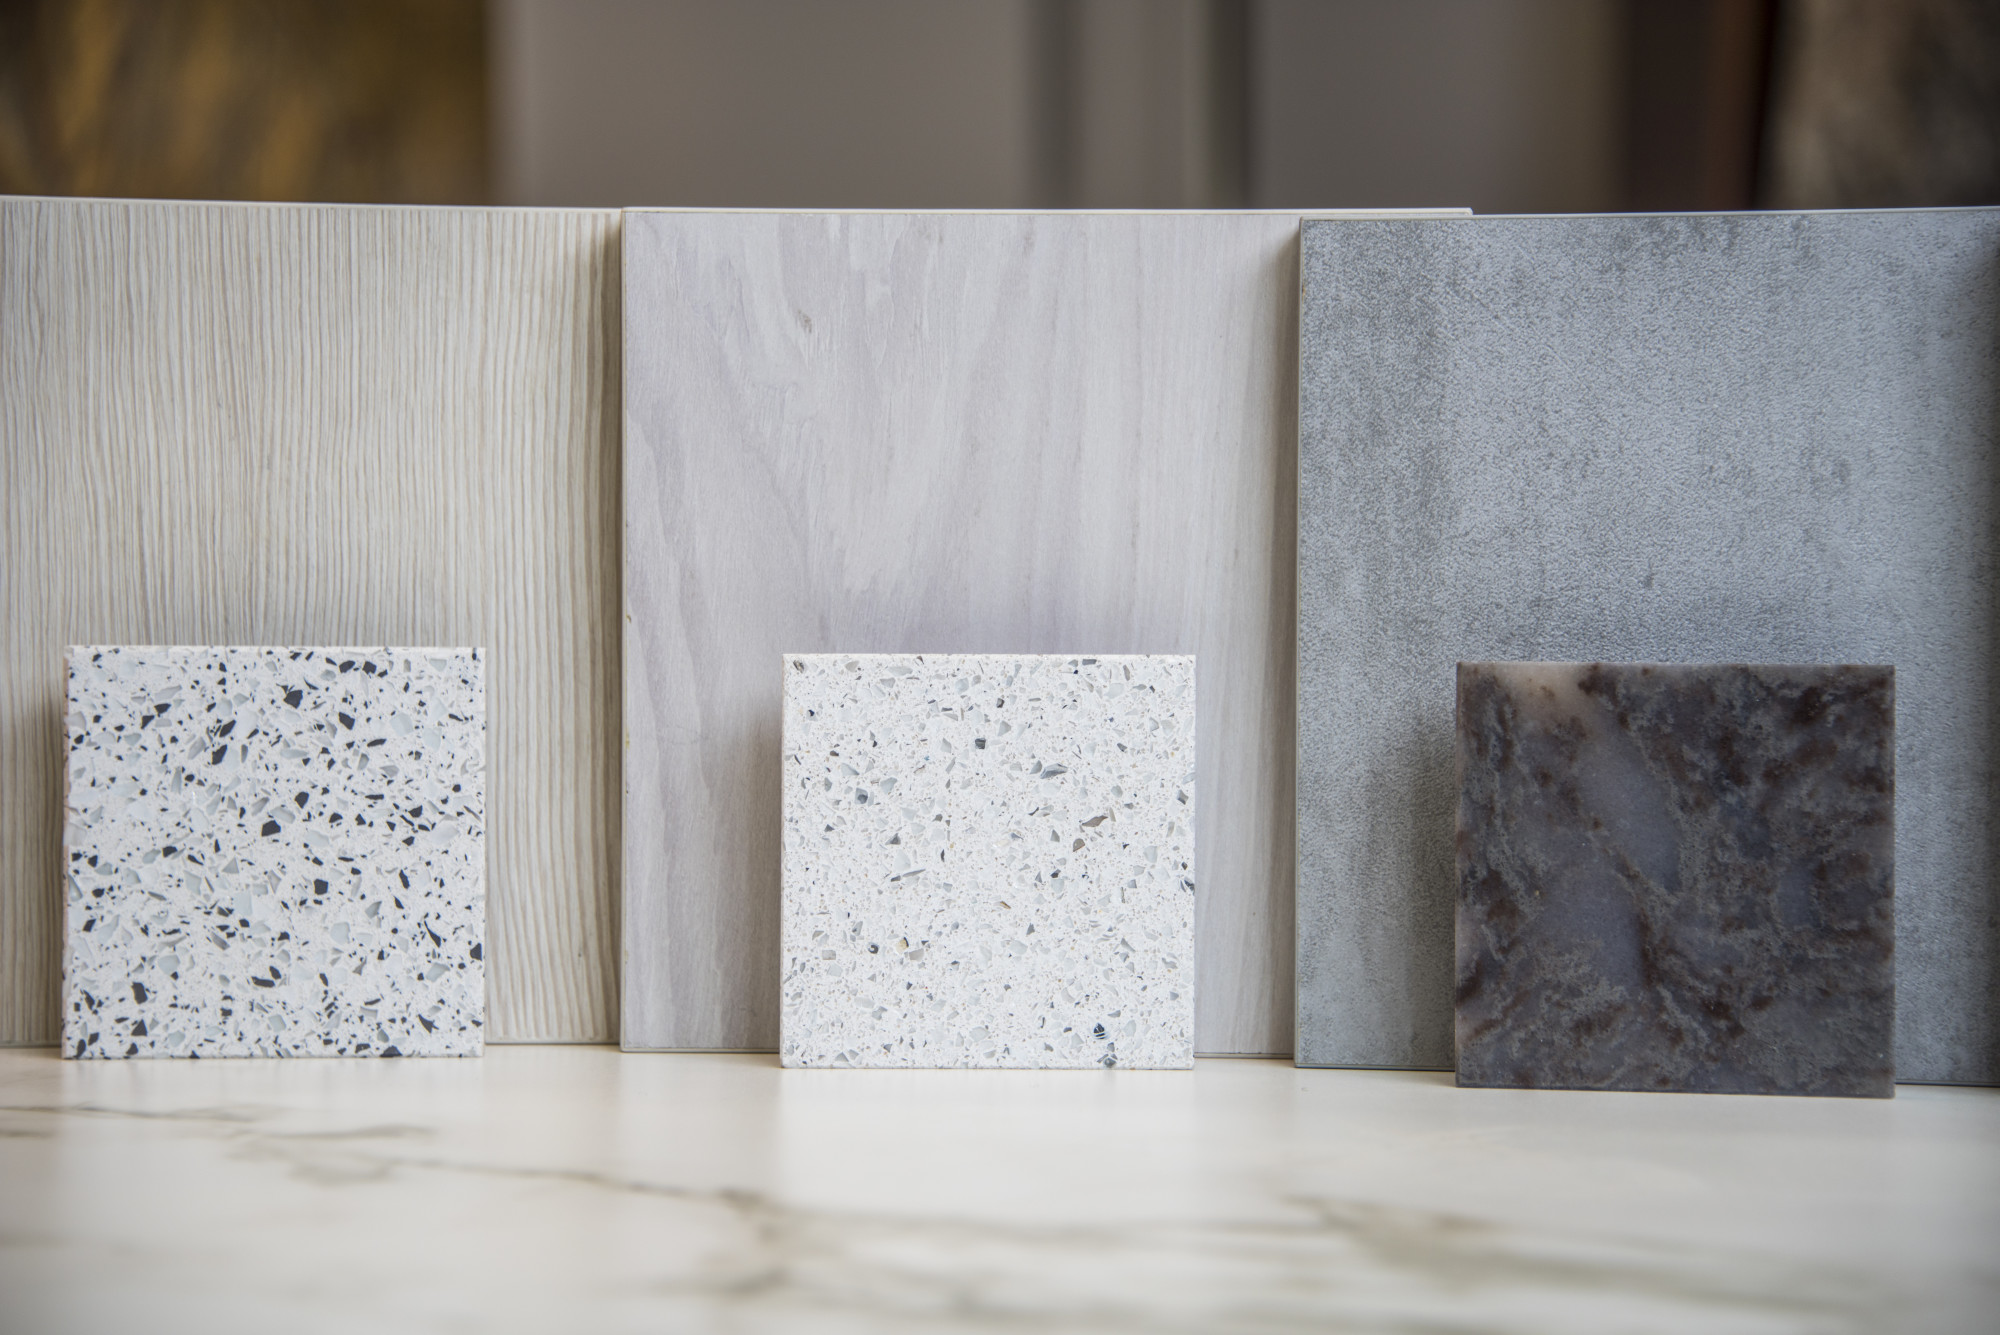 Quarts Vs Granite Countertops Increasing Your Home Value And Why